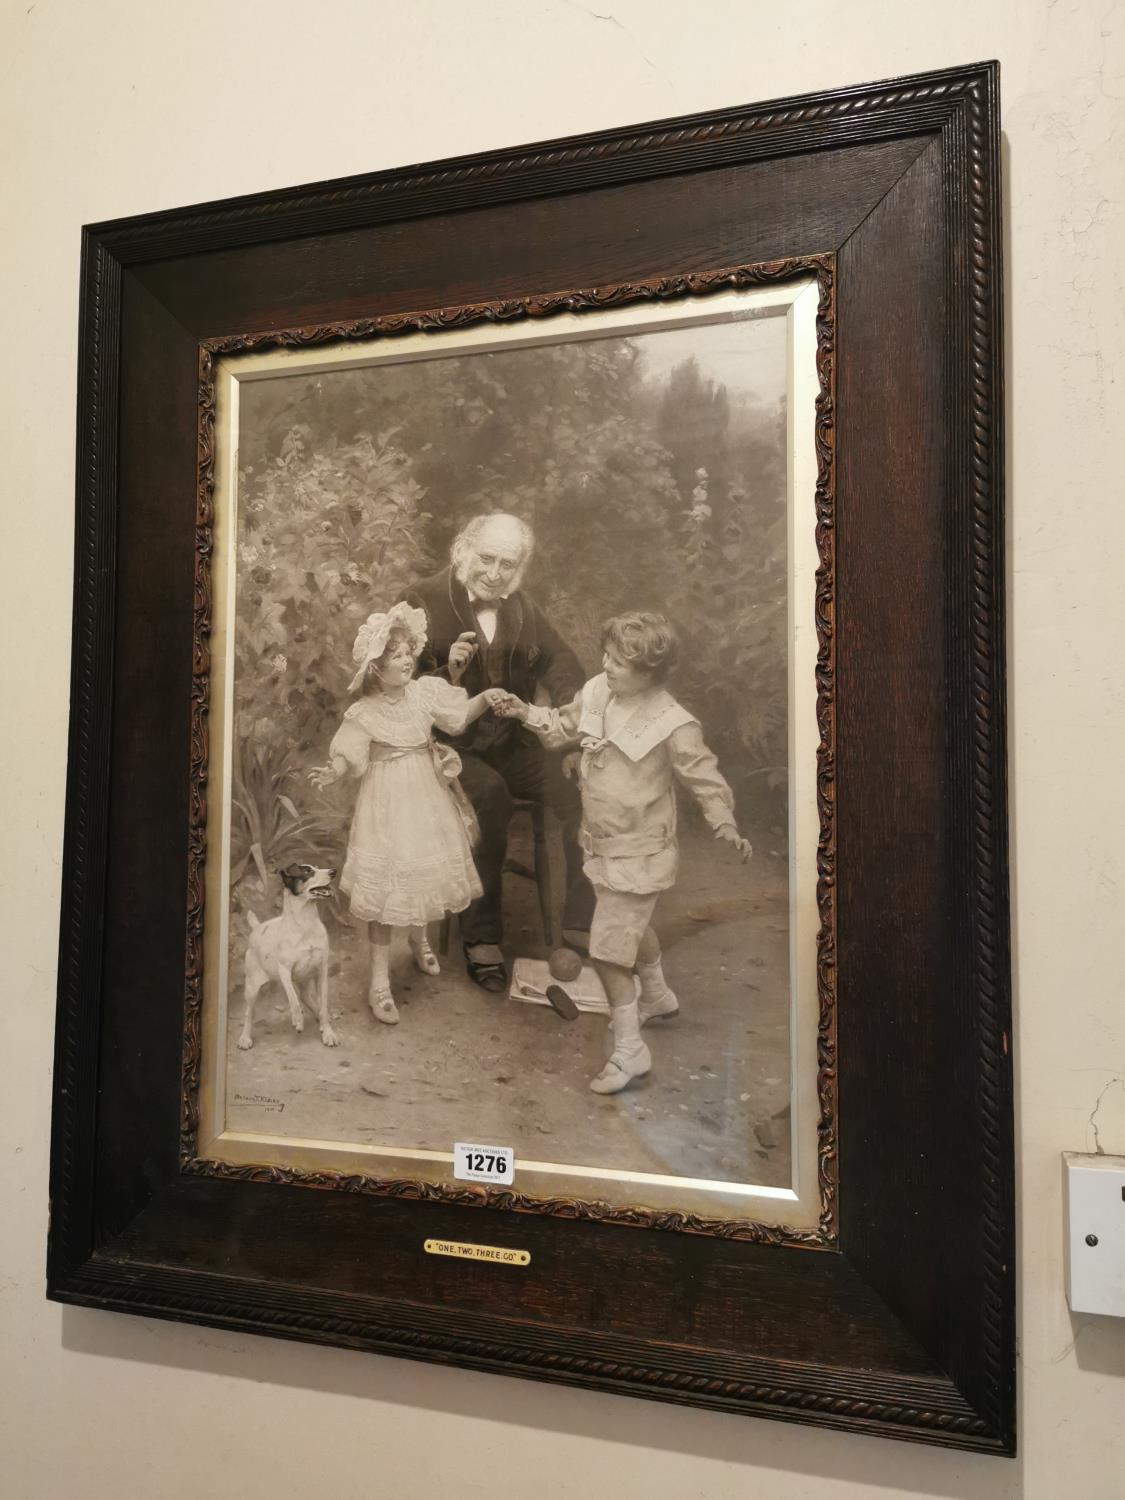 Early 20th C. black and white family print.